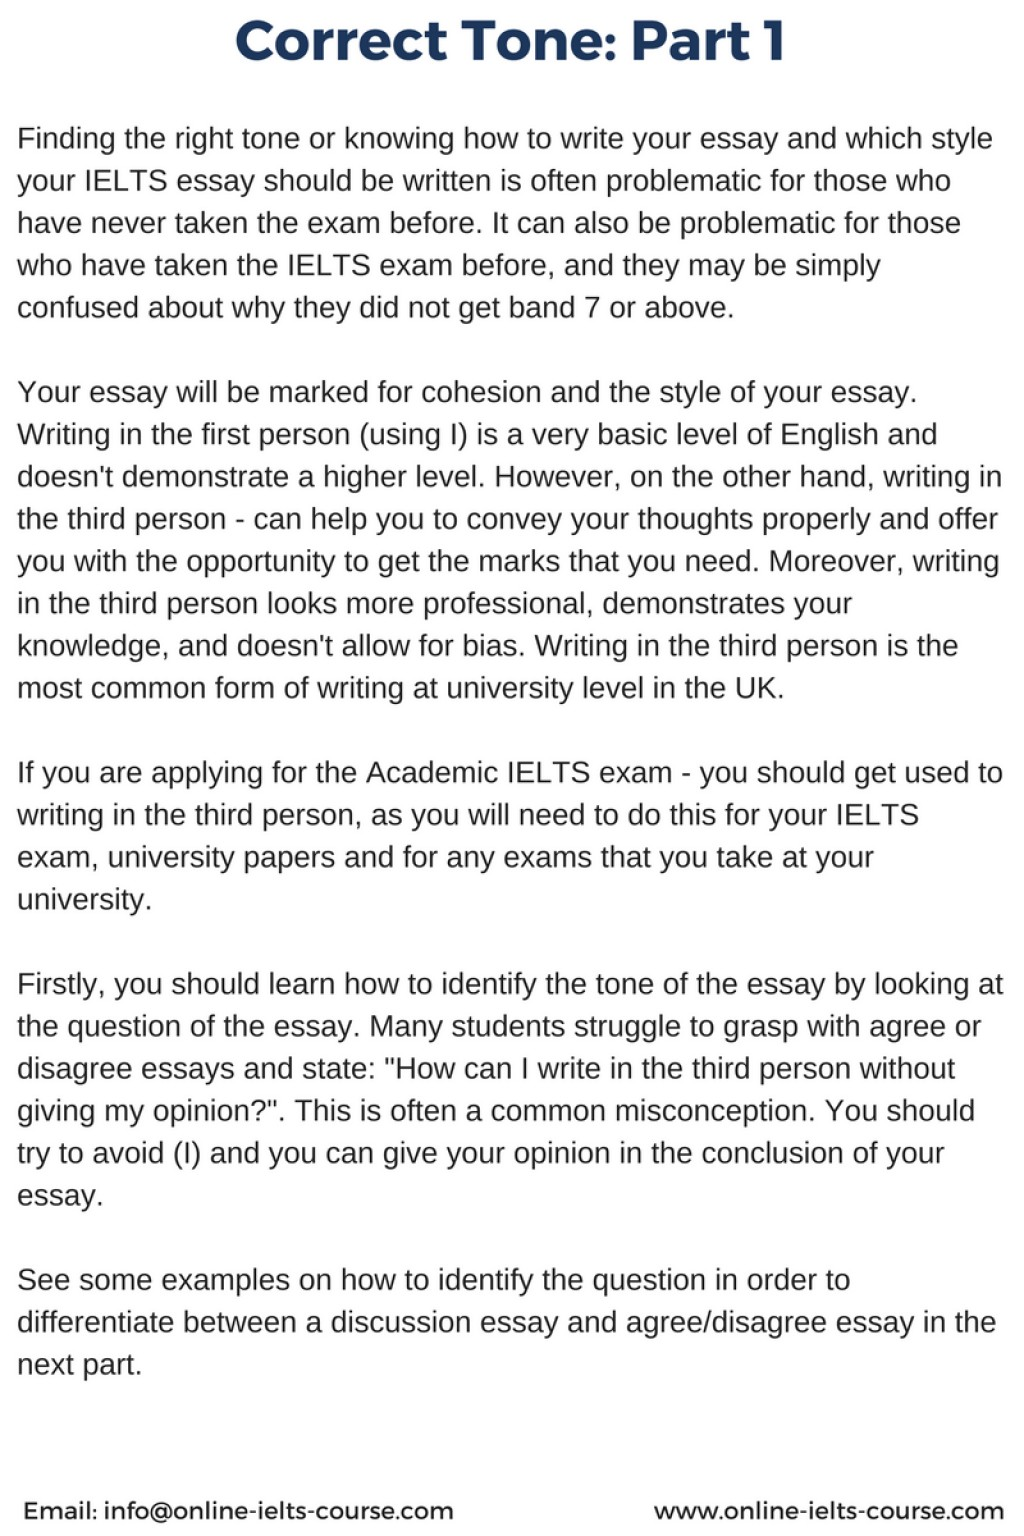 011 Essay Example C76421 B614b0e239514668a91884491c870a6fmv2 Tone Of Dreaded An The Is Primarily Established Academic What Usual Argumentative Large